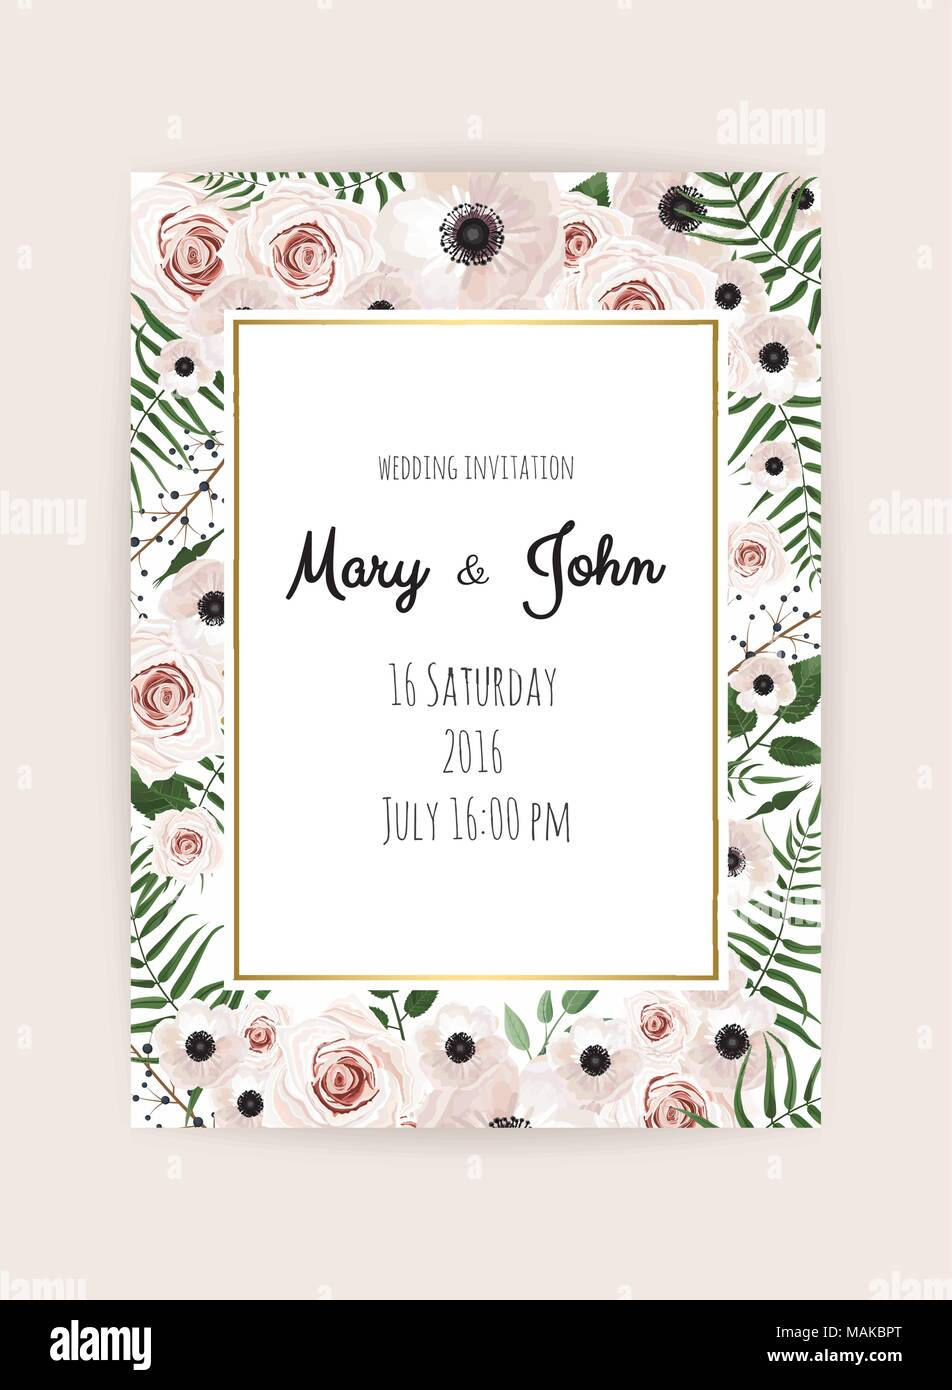 Vector invitation with handmade floral elements. Wedding invitation ...